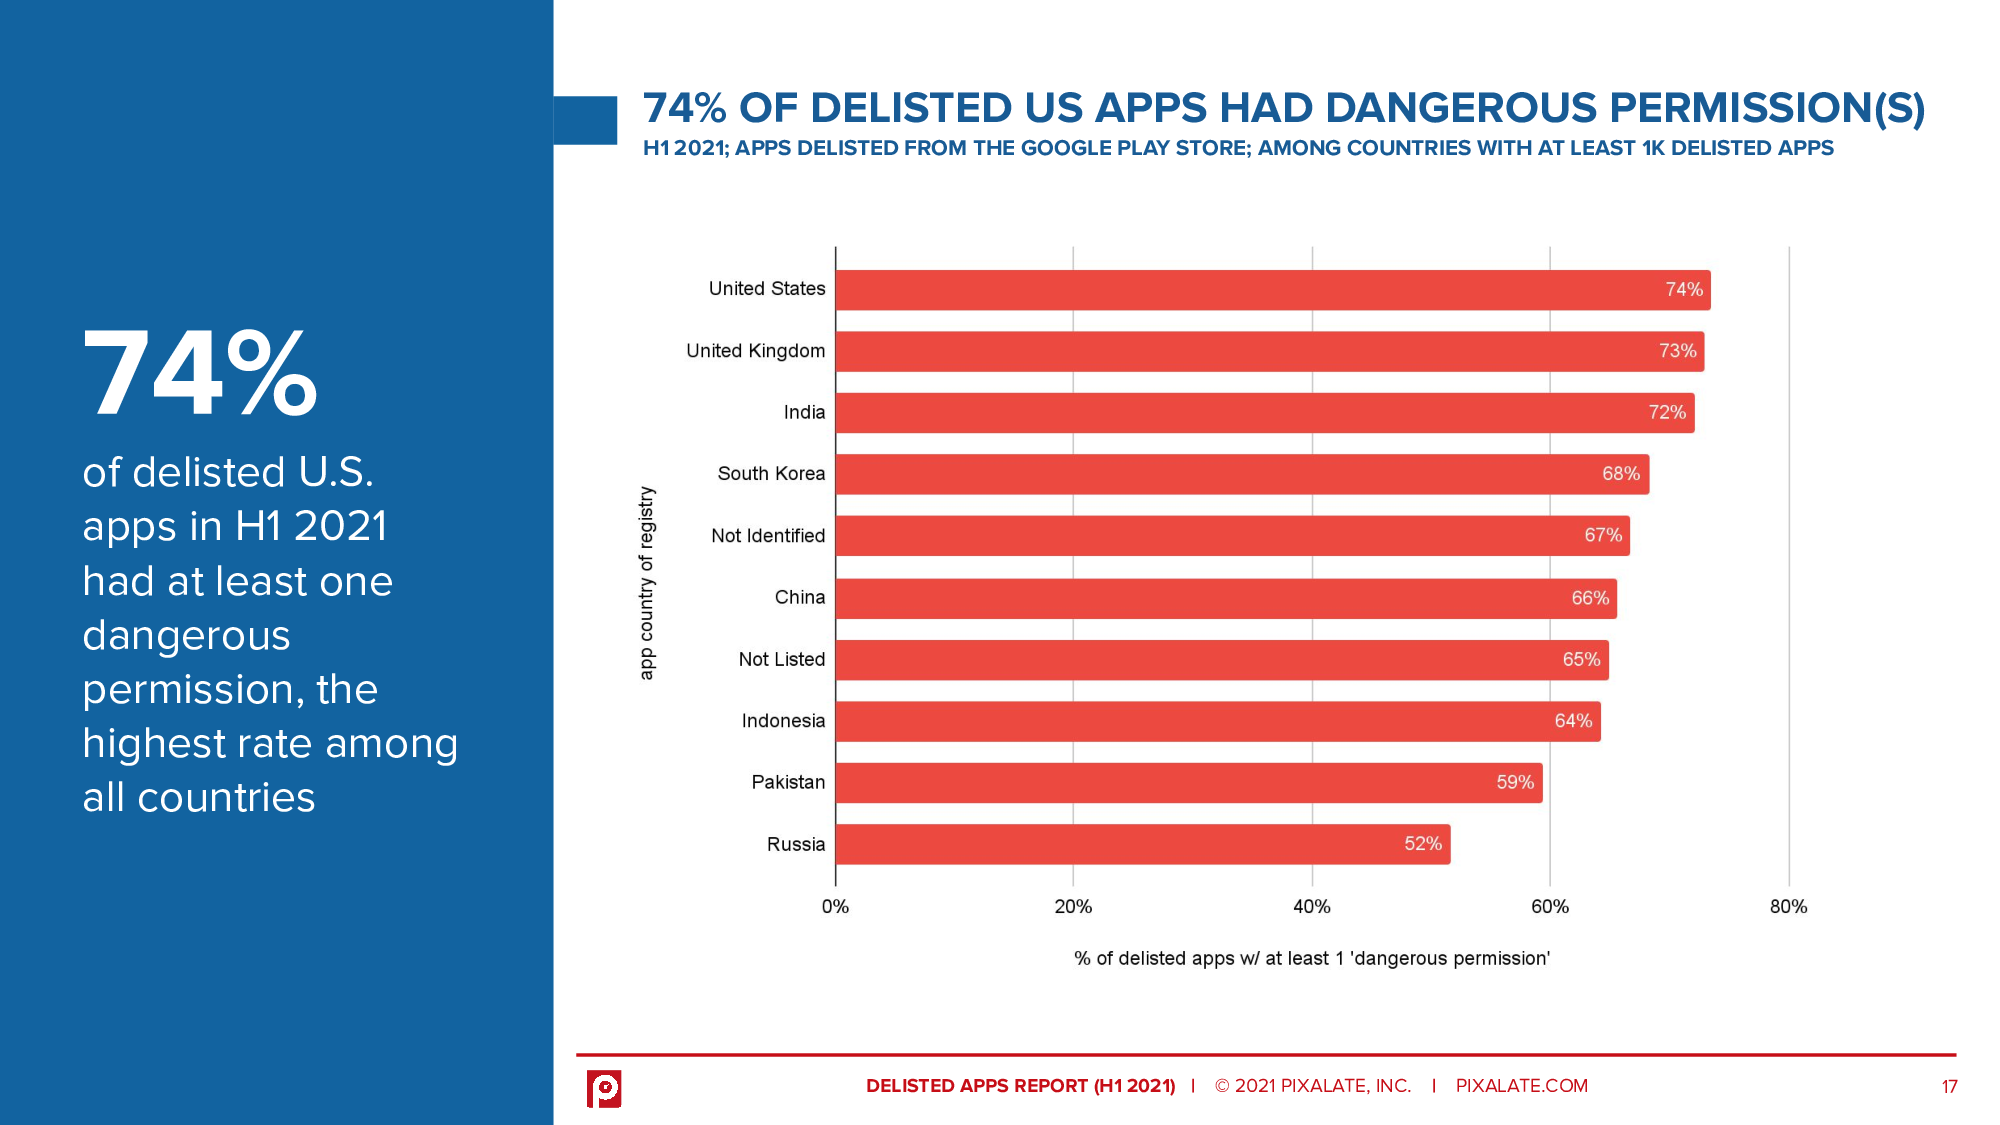 74% of delisted U.S. apps in H1 2021 had at least one dangerous permission, the highest rate among all countries